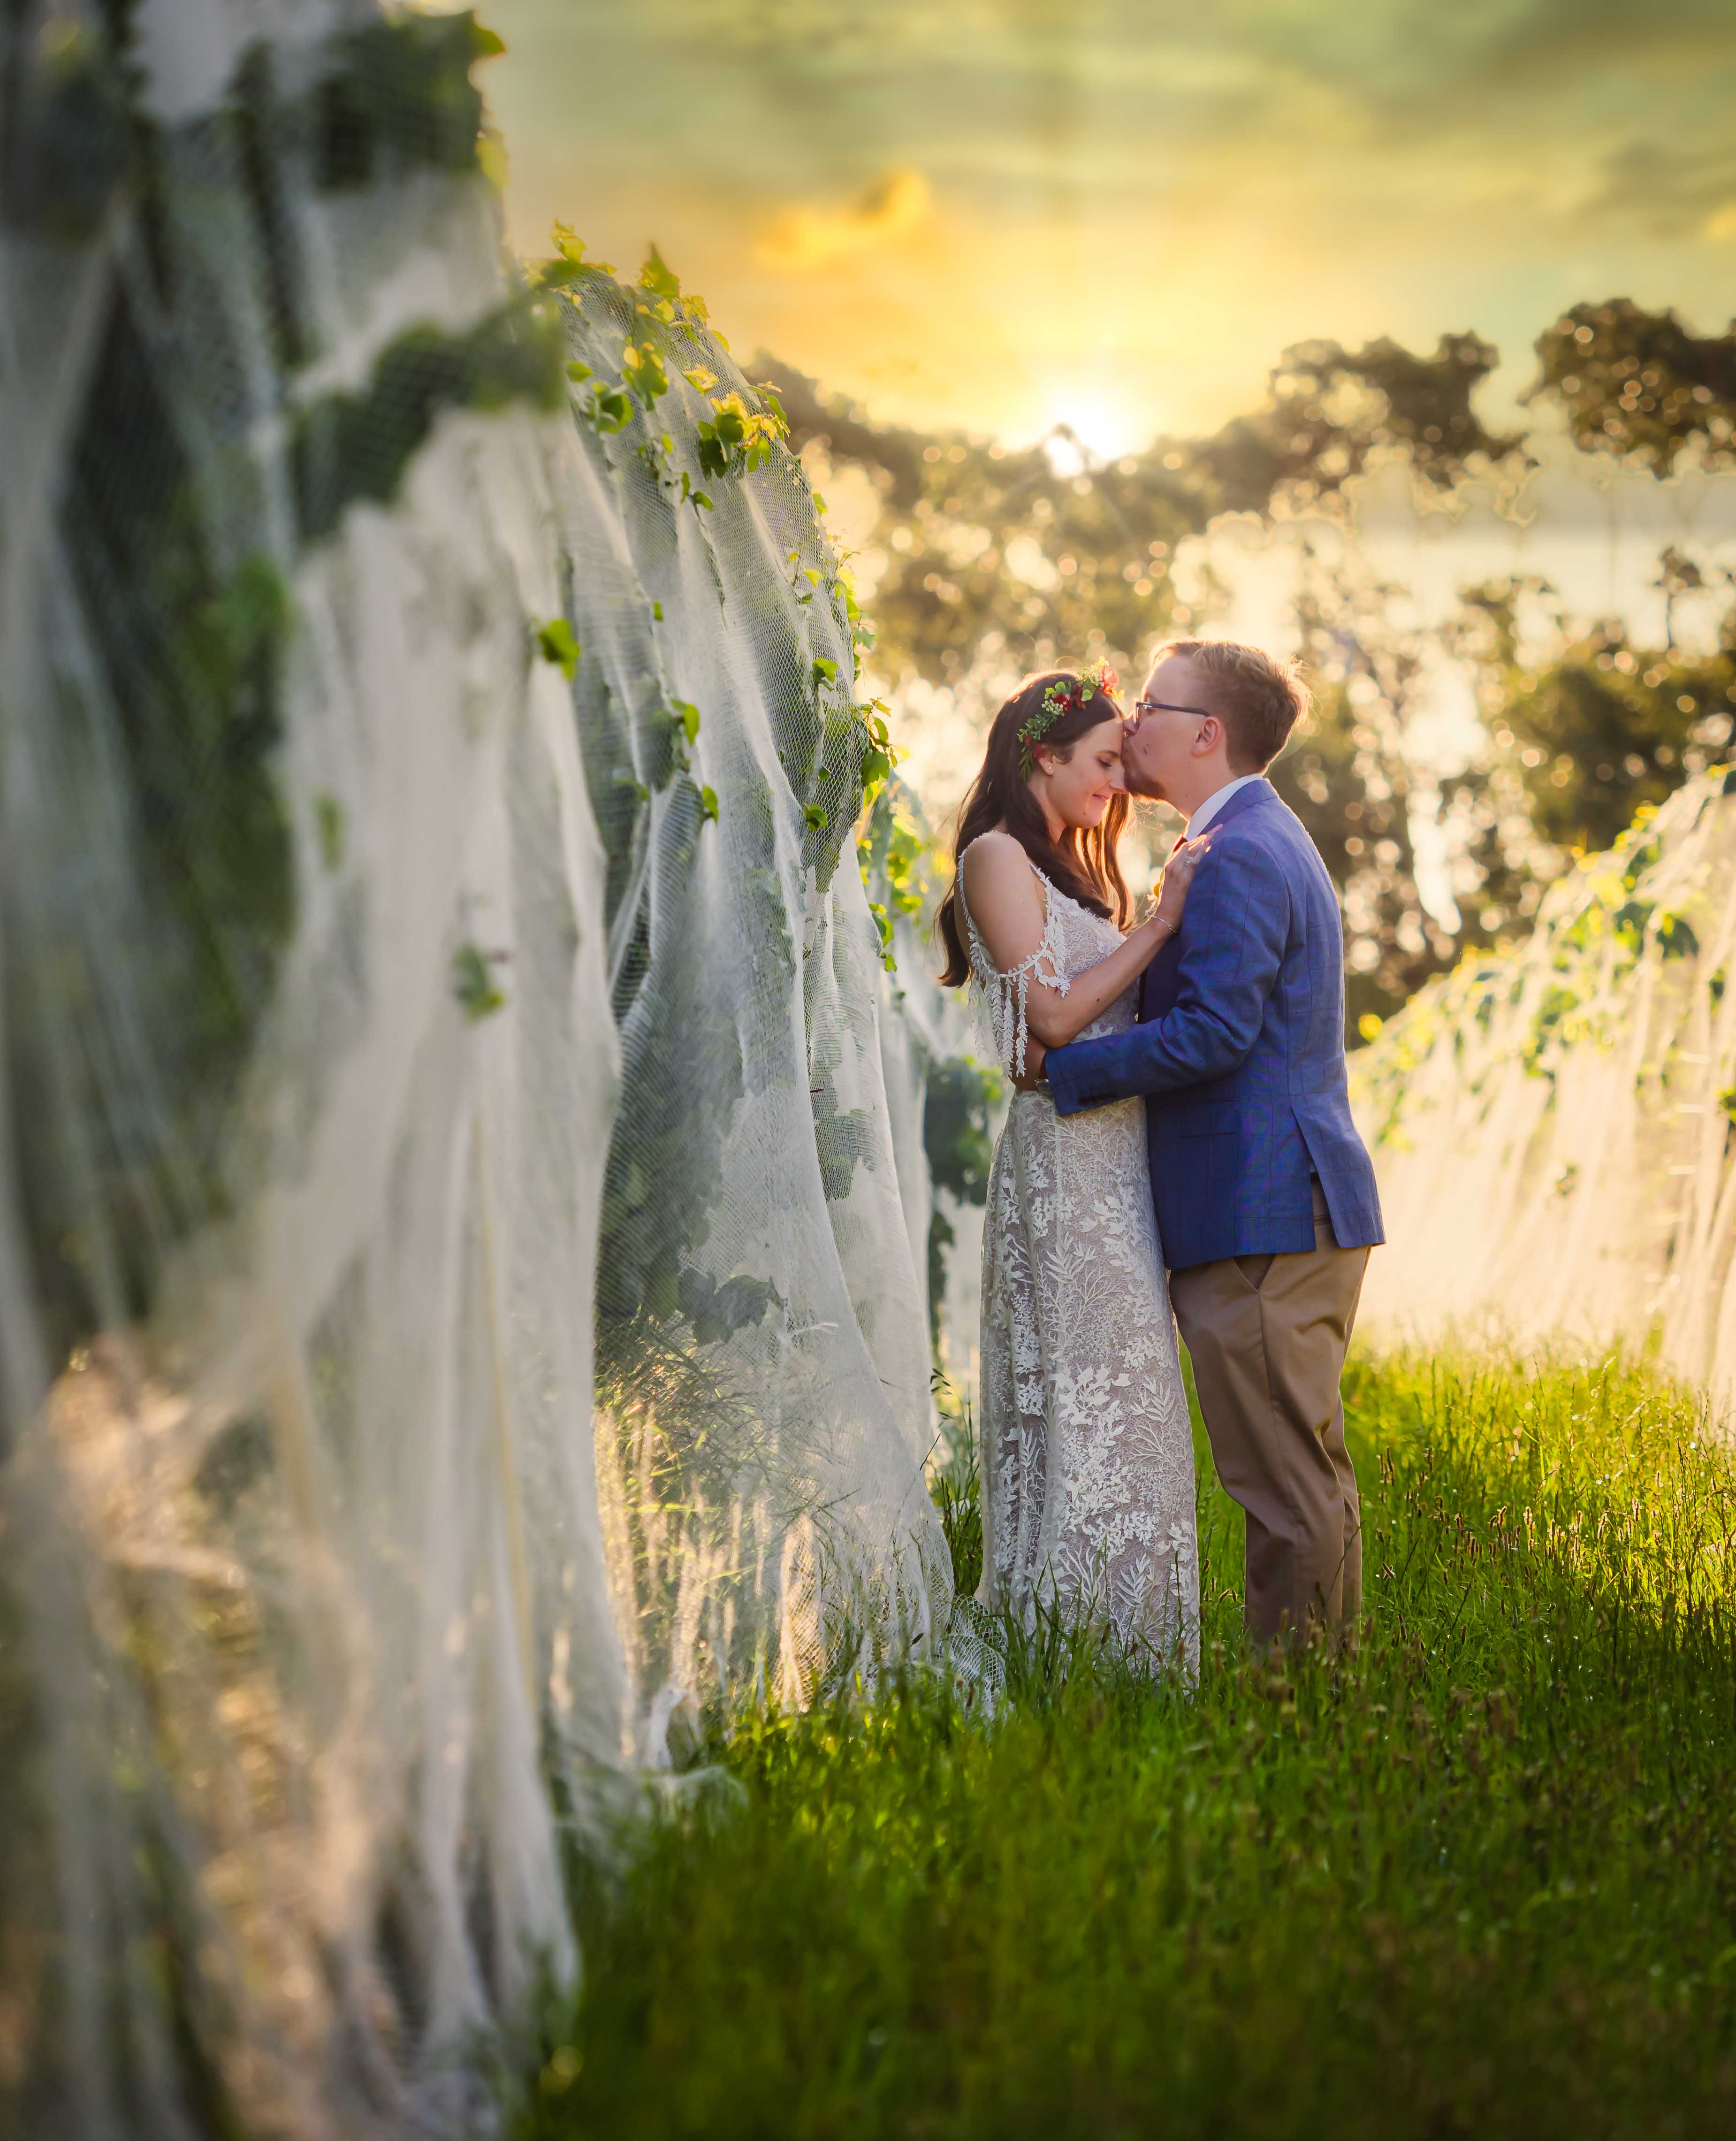 soft focus outdoor kiss - photo by Sean Reefman Photography